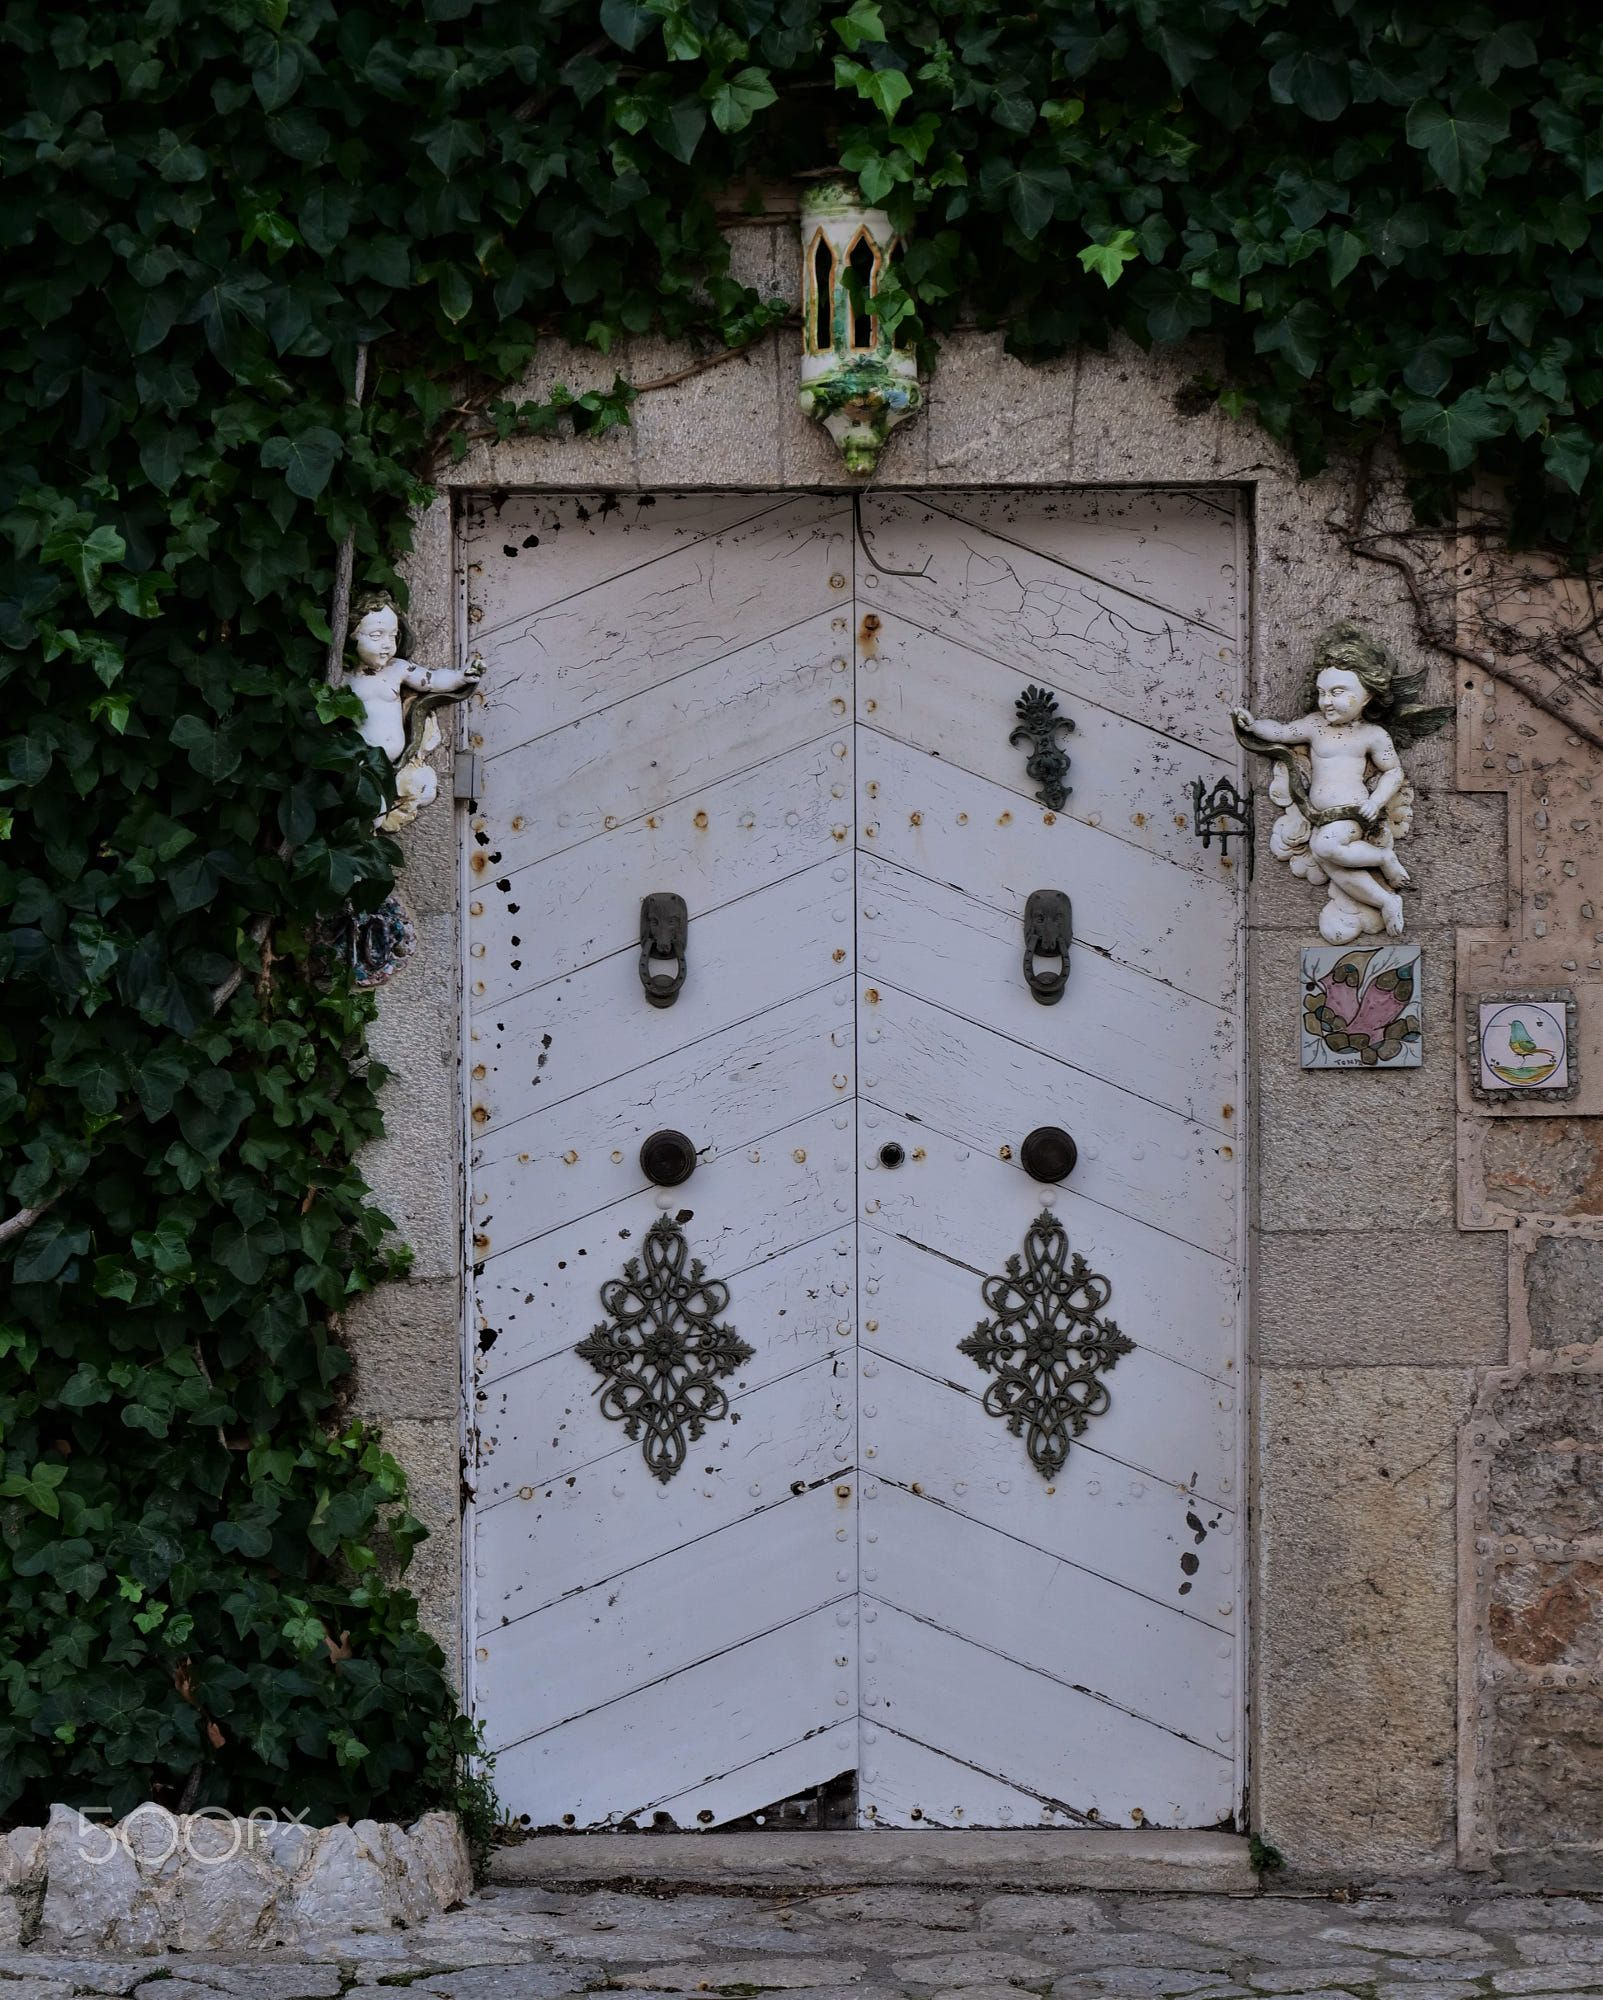 The enchanted door. by RySCH & The enchanted door. by RySCH | Portals - Doors and Windows ...